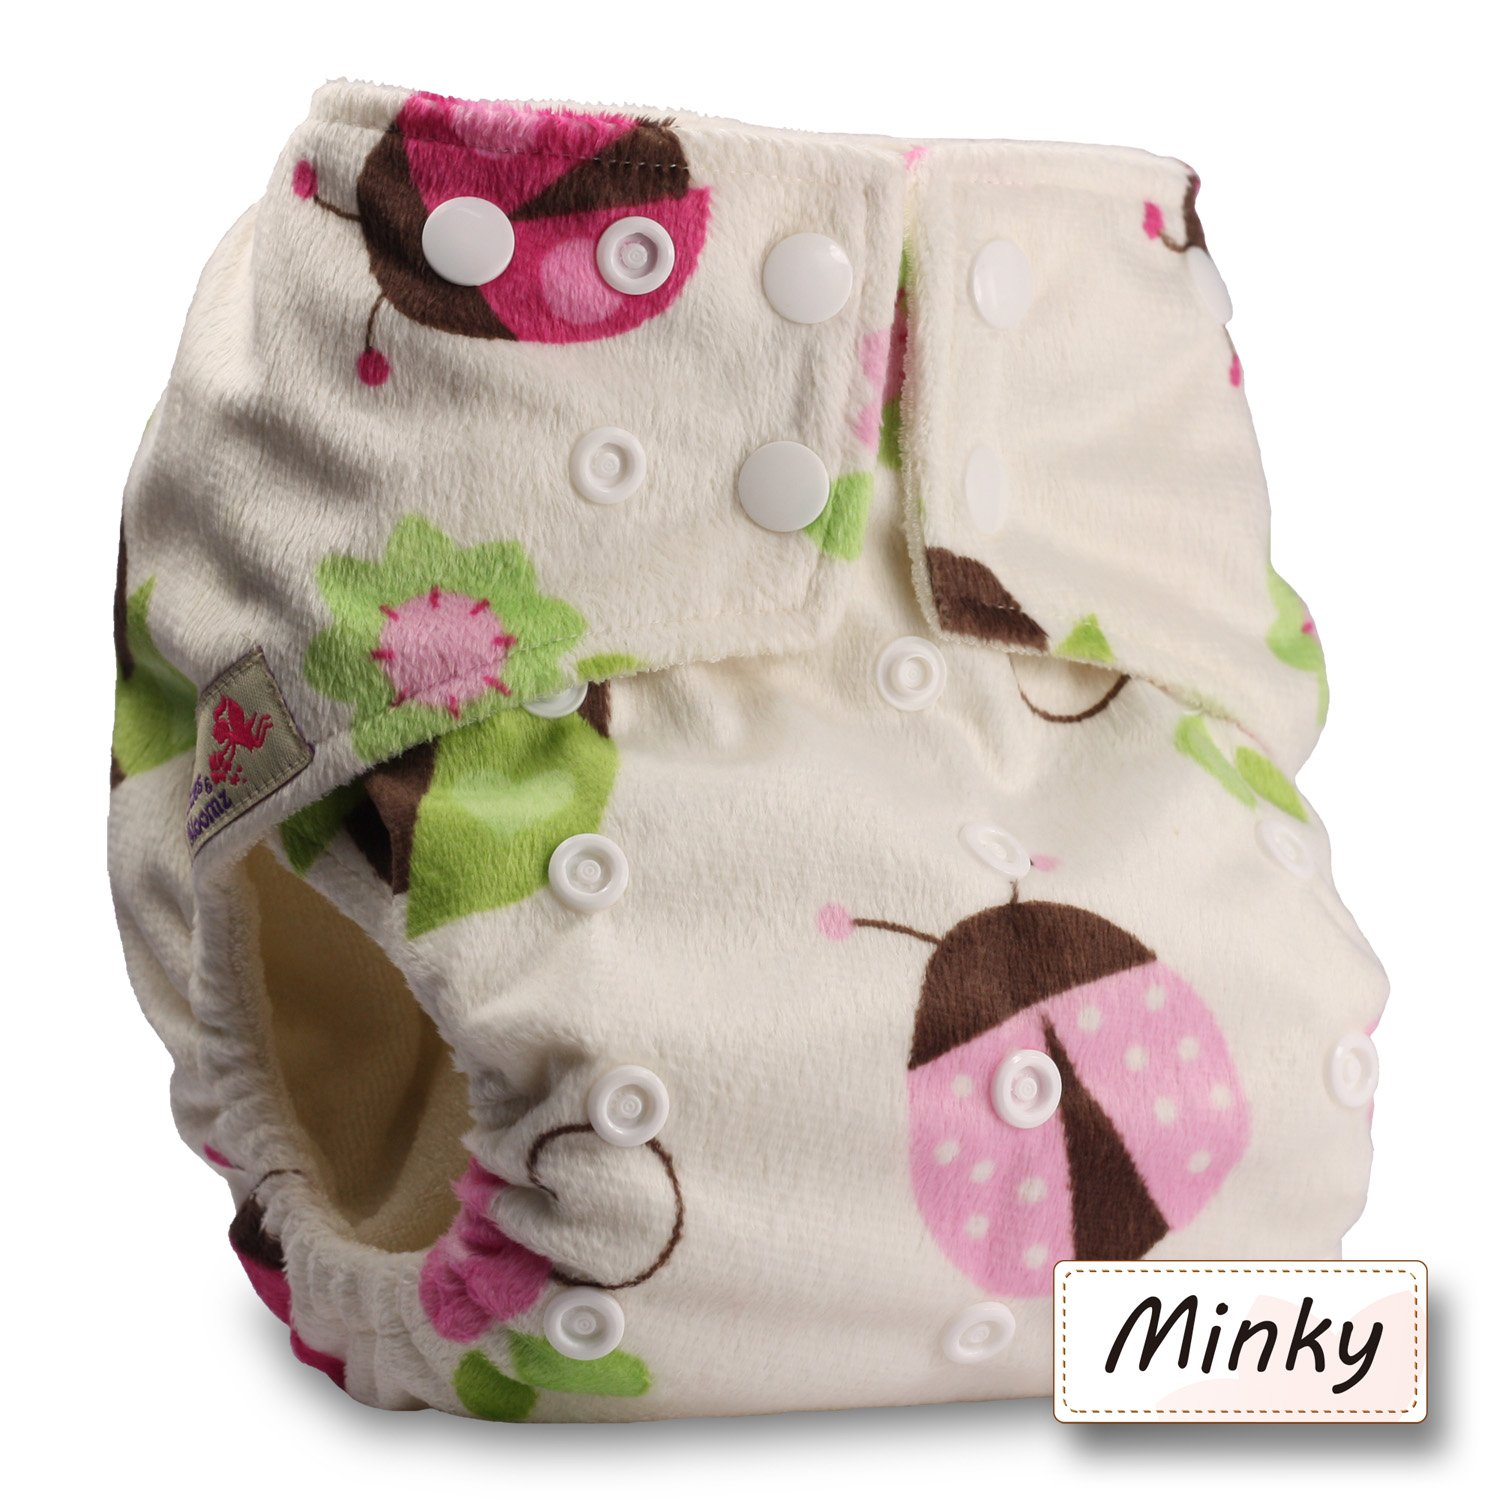 Littles & Bloomz, Baby Cloth Washable Reusable Nappy Pocket Diaper Bamboo, Fastener: Popper, Pattern 19, Without Insert